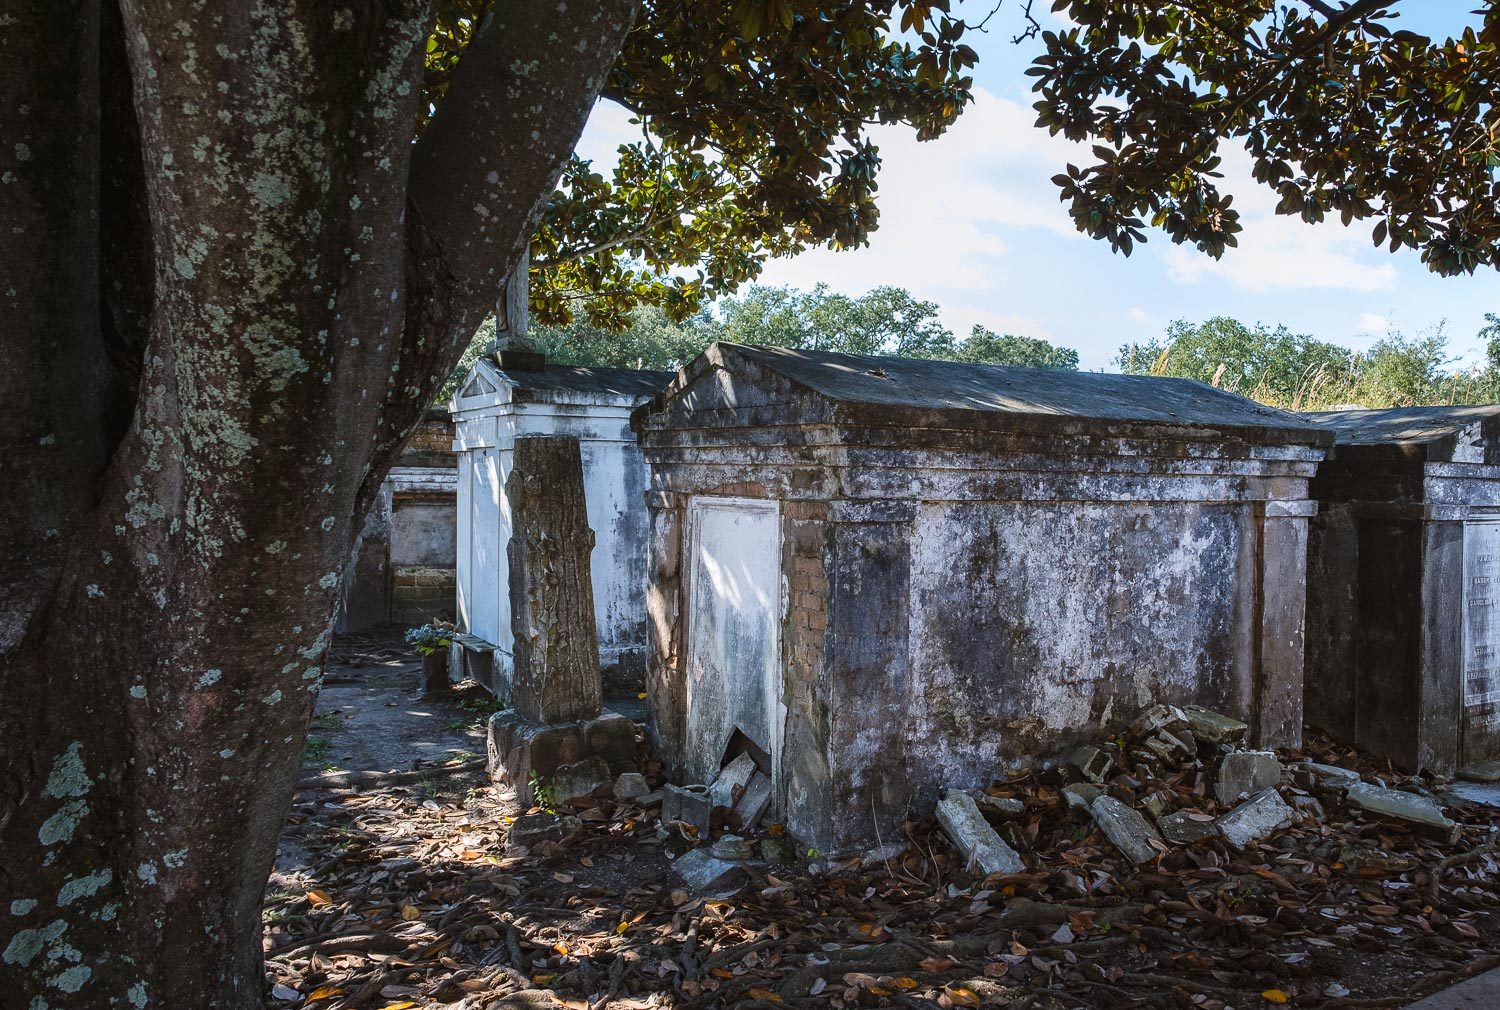 """Lafayette Cemetery - Travel photography and guide by © Natasha Lequepeys for """"And Then I Met Yoko"""". #neworleans #nola #photoblog #travelitinerary #fujifilm #cemetery"""